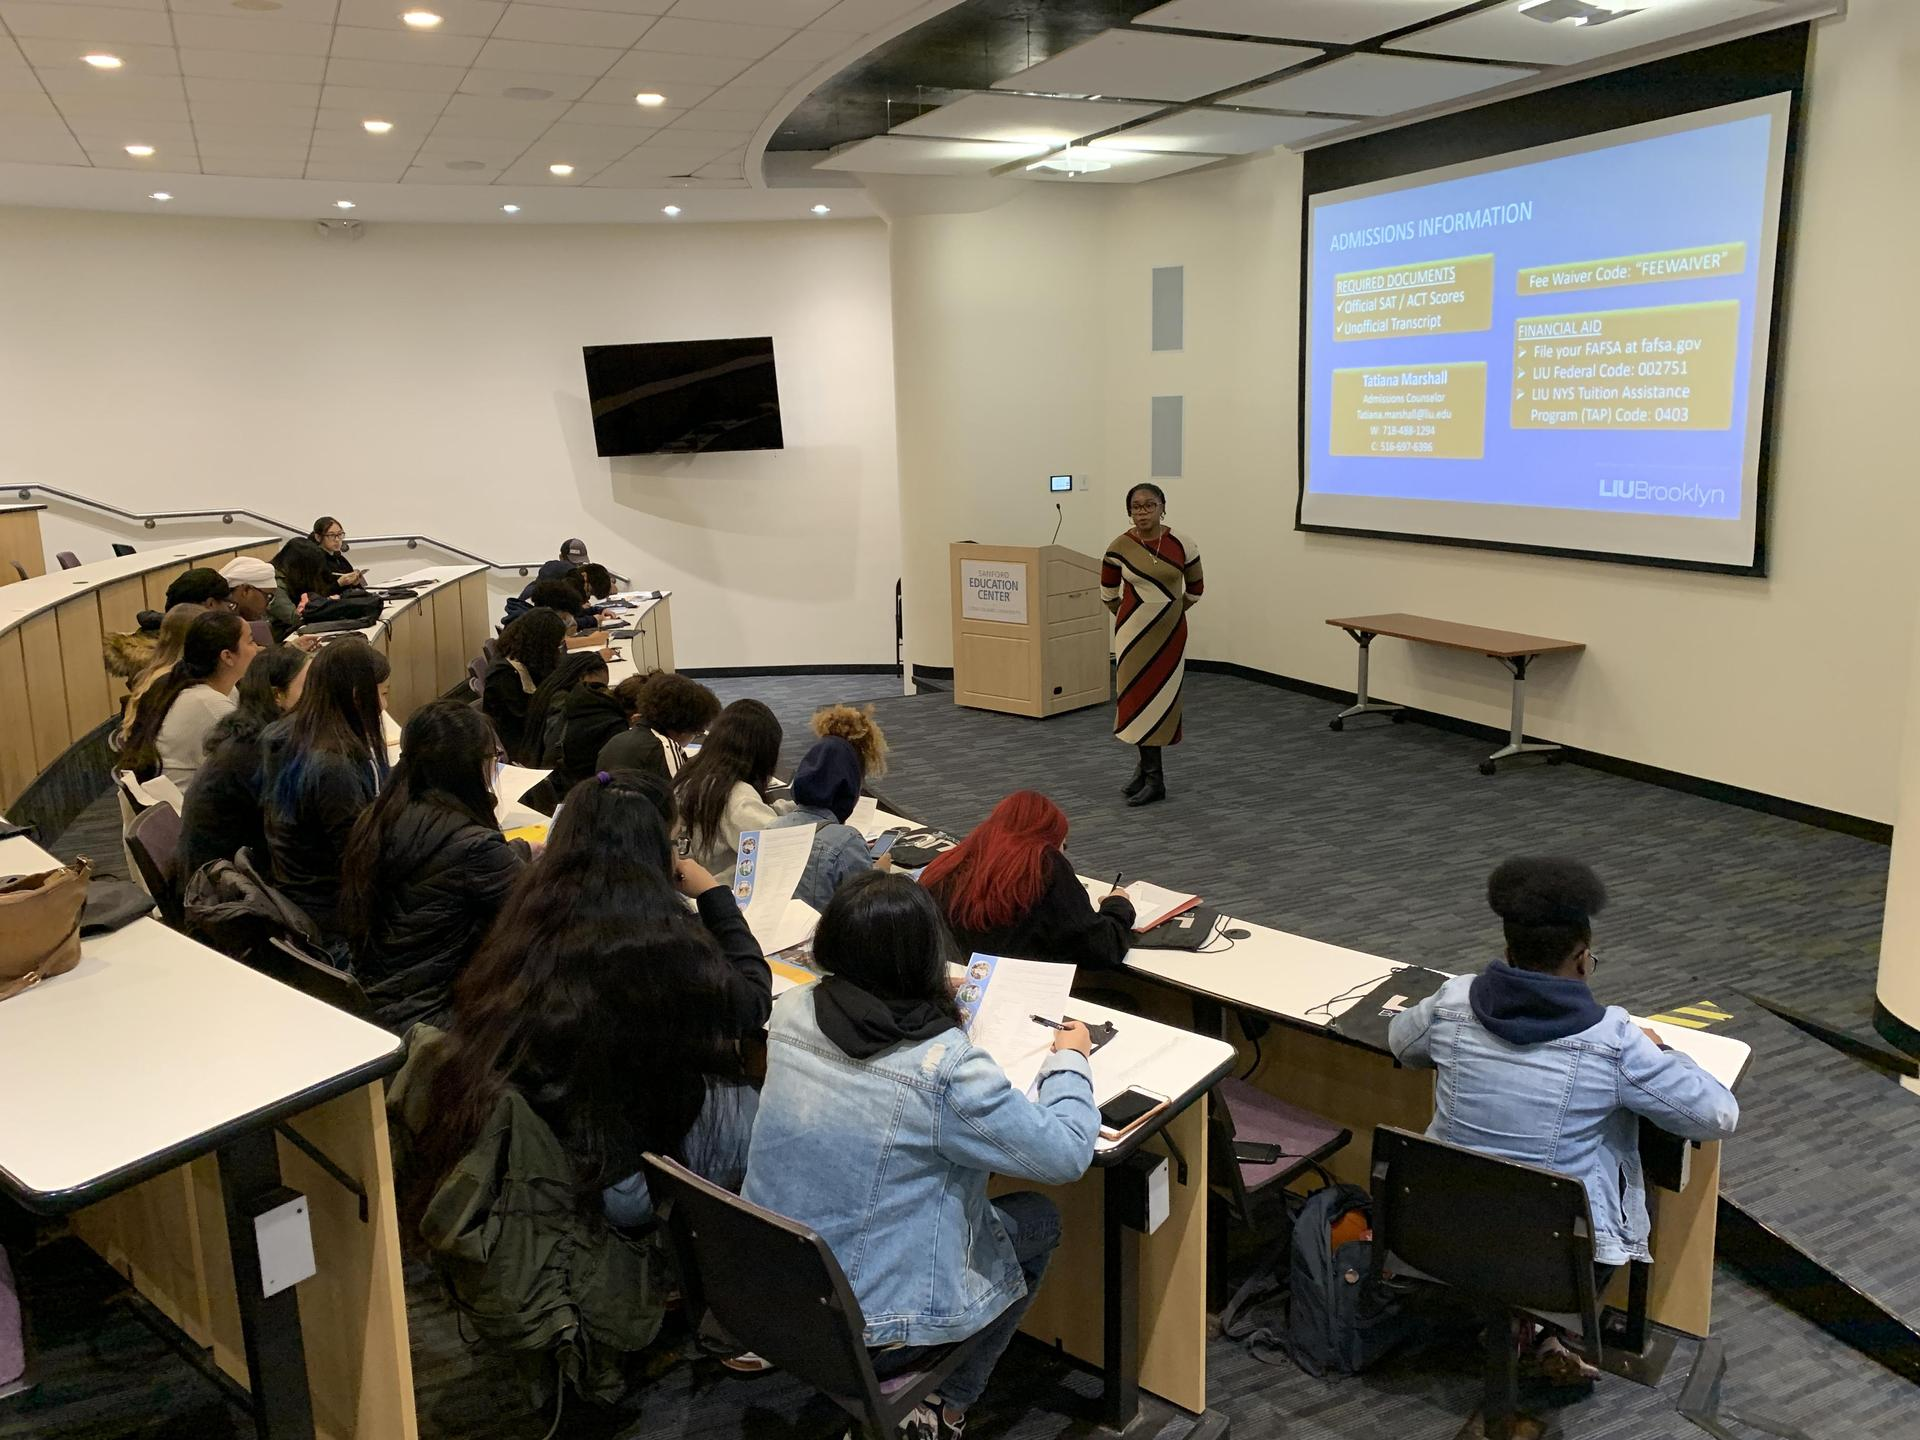 Admissions Information Classroom